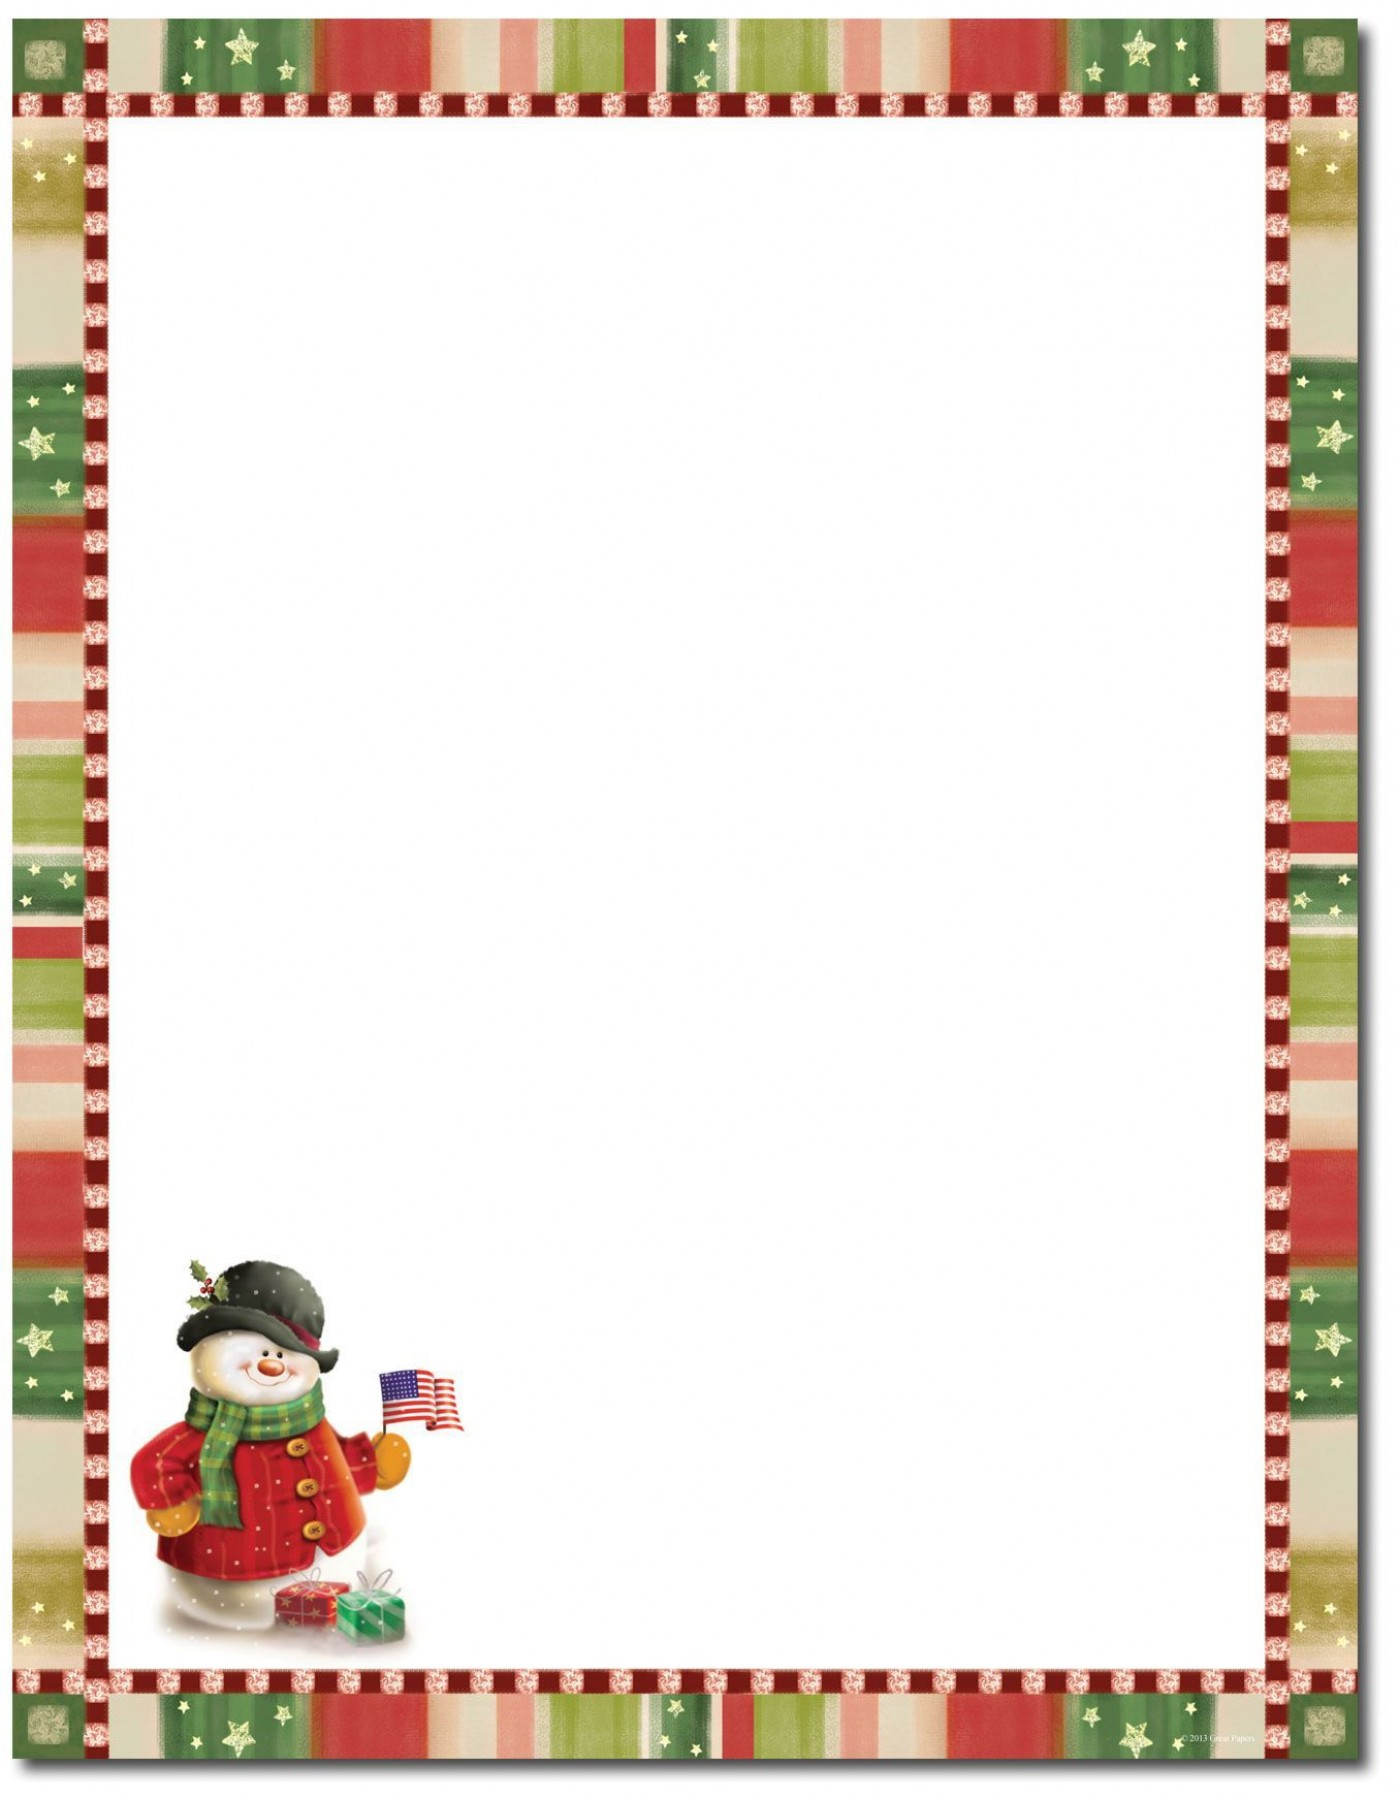 000 Awesome Free Holiday Stationery Template For Word Inspiration 1400